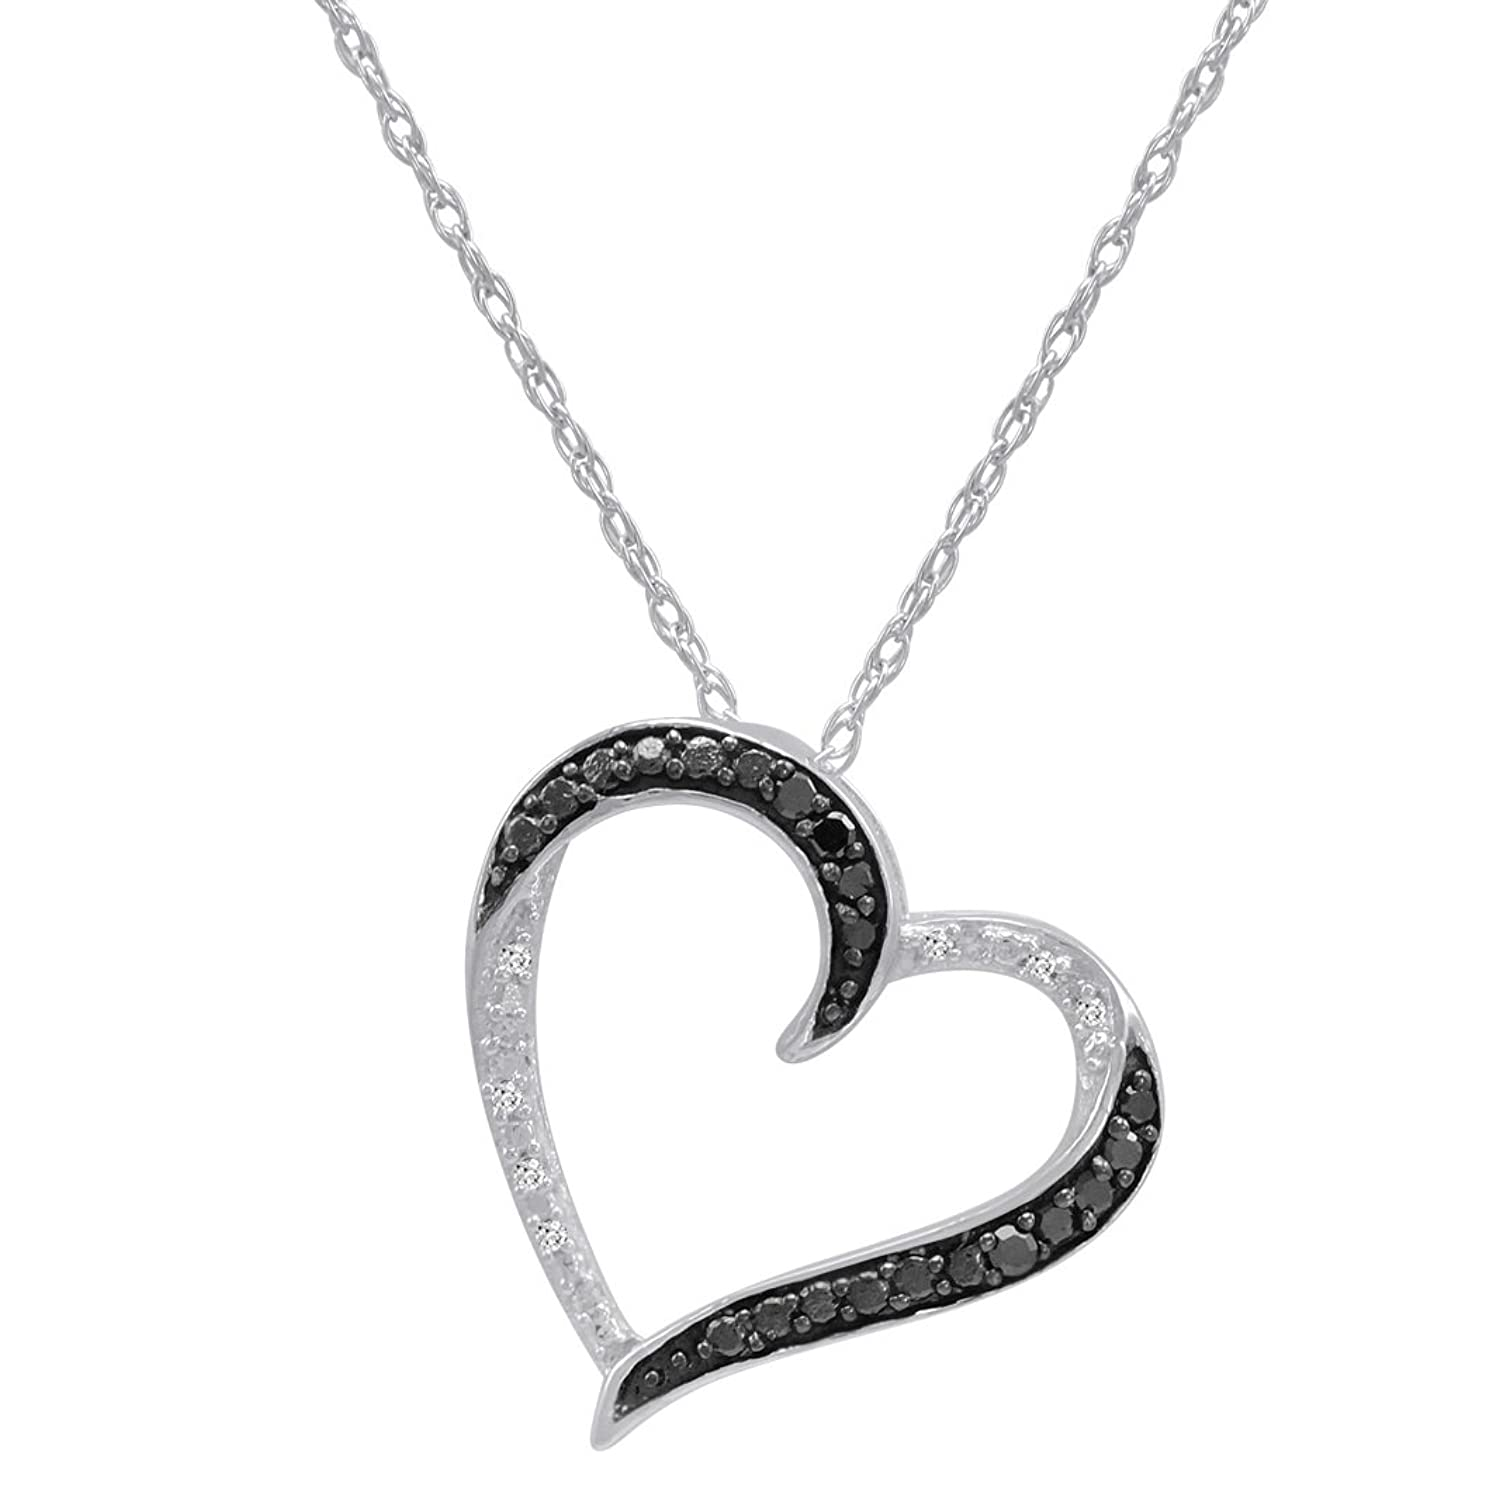 Sterling Silver 1 10ct TW Black and White Round Diamond Heart